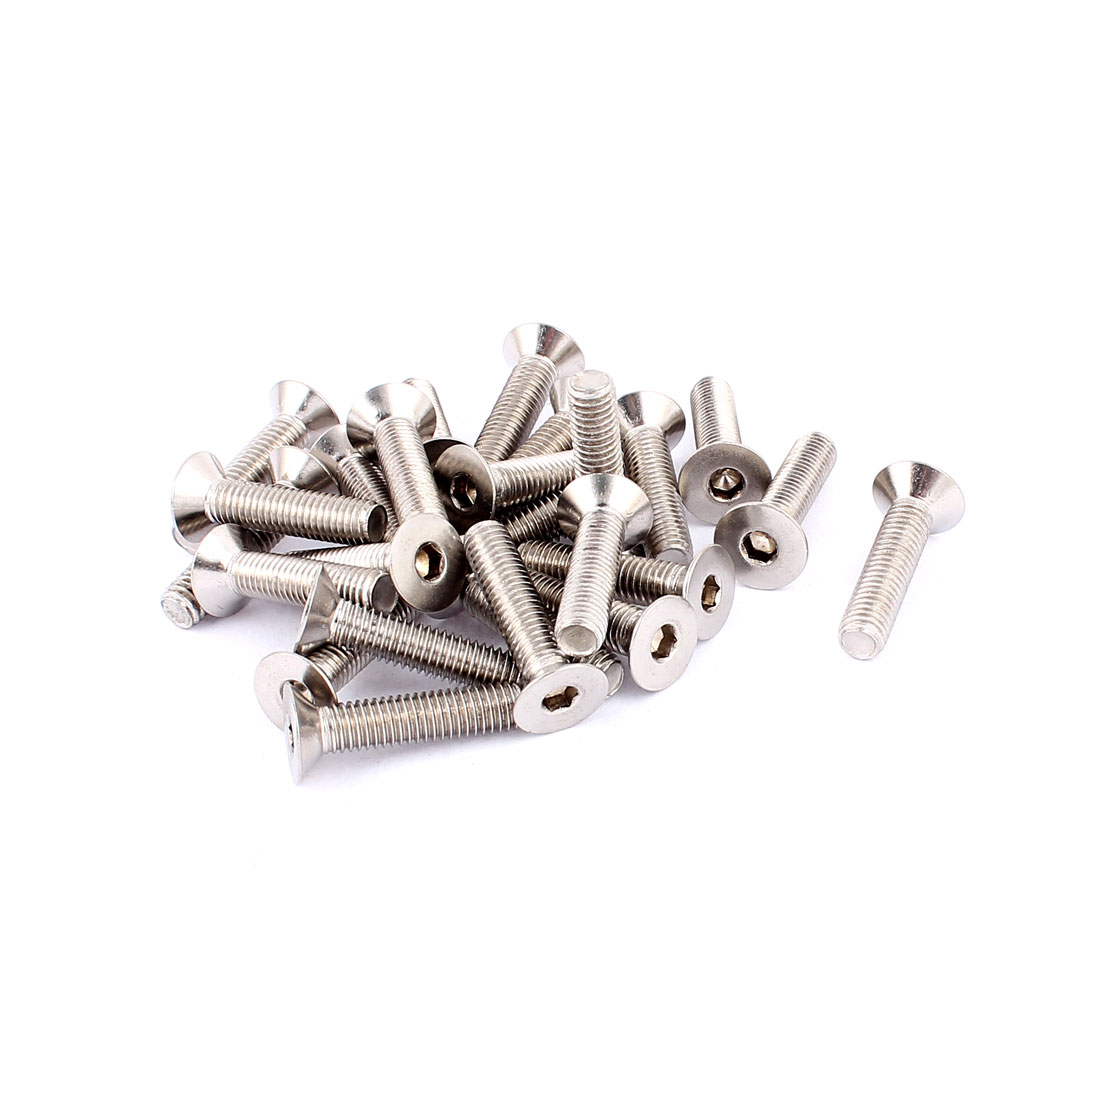 Countersunk Flat Head Hex Socket Screw Bolt DIN 7991 Silver Tone M8 x 35mm 25 Pcs